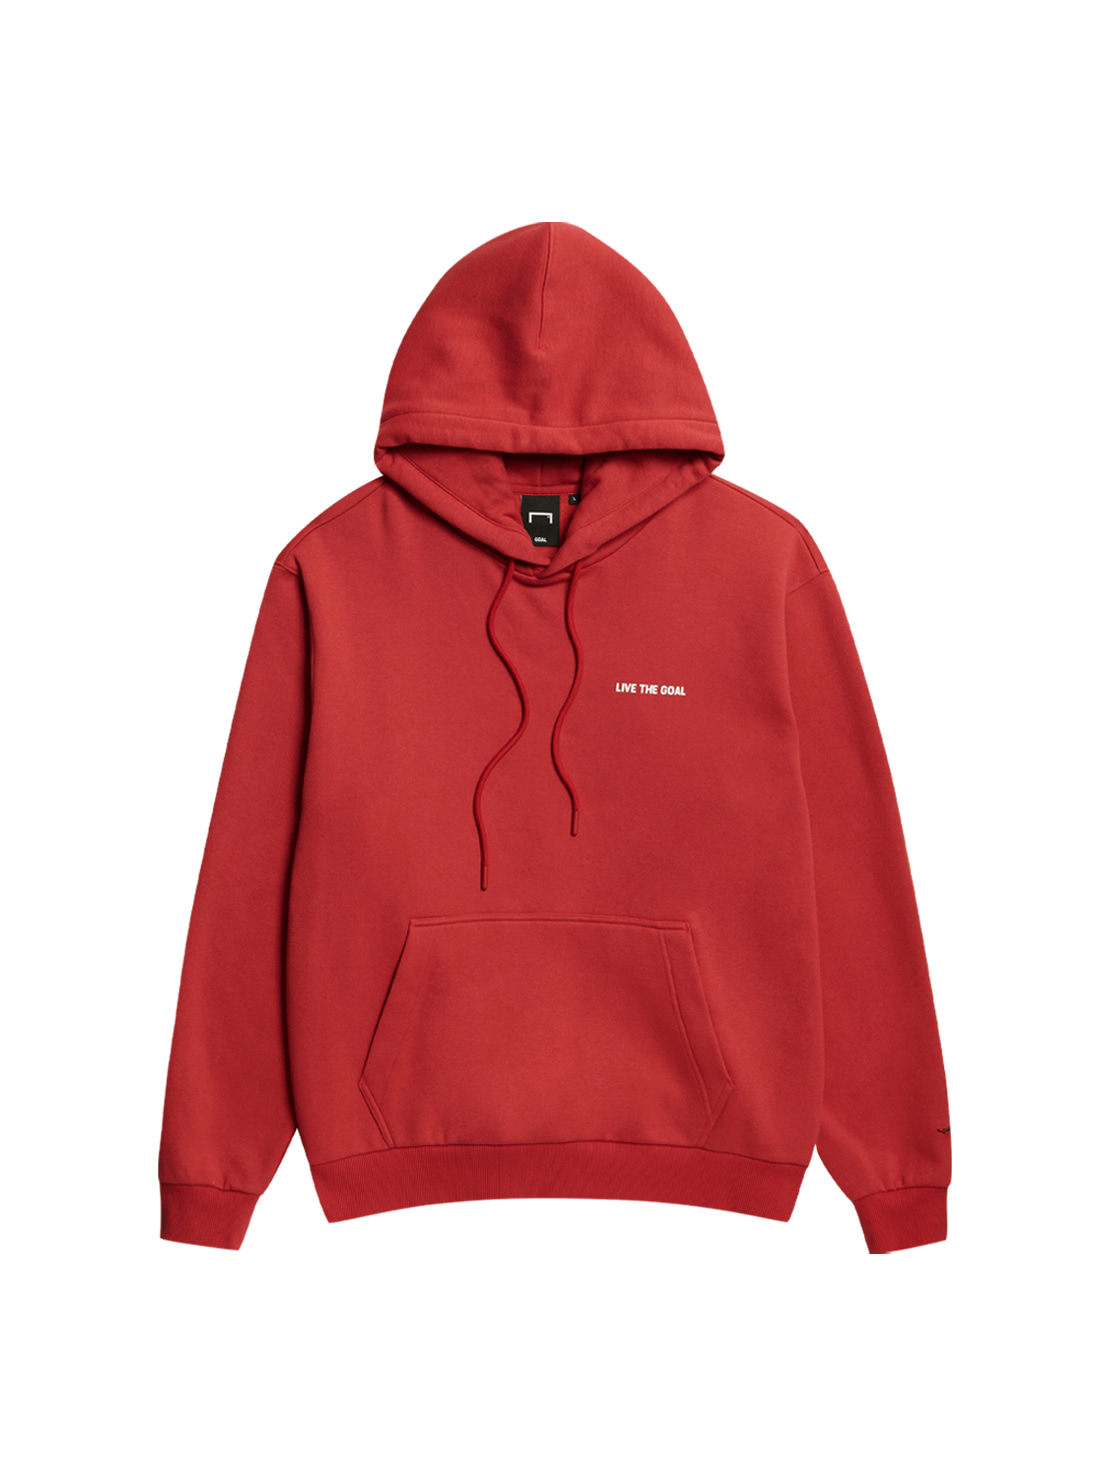 GOALSTUDIO LIVE THE GOAL HOODIE - RED